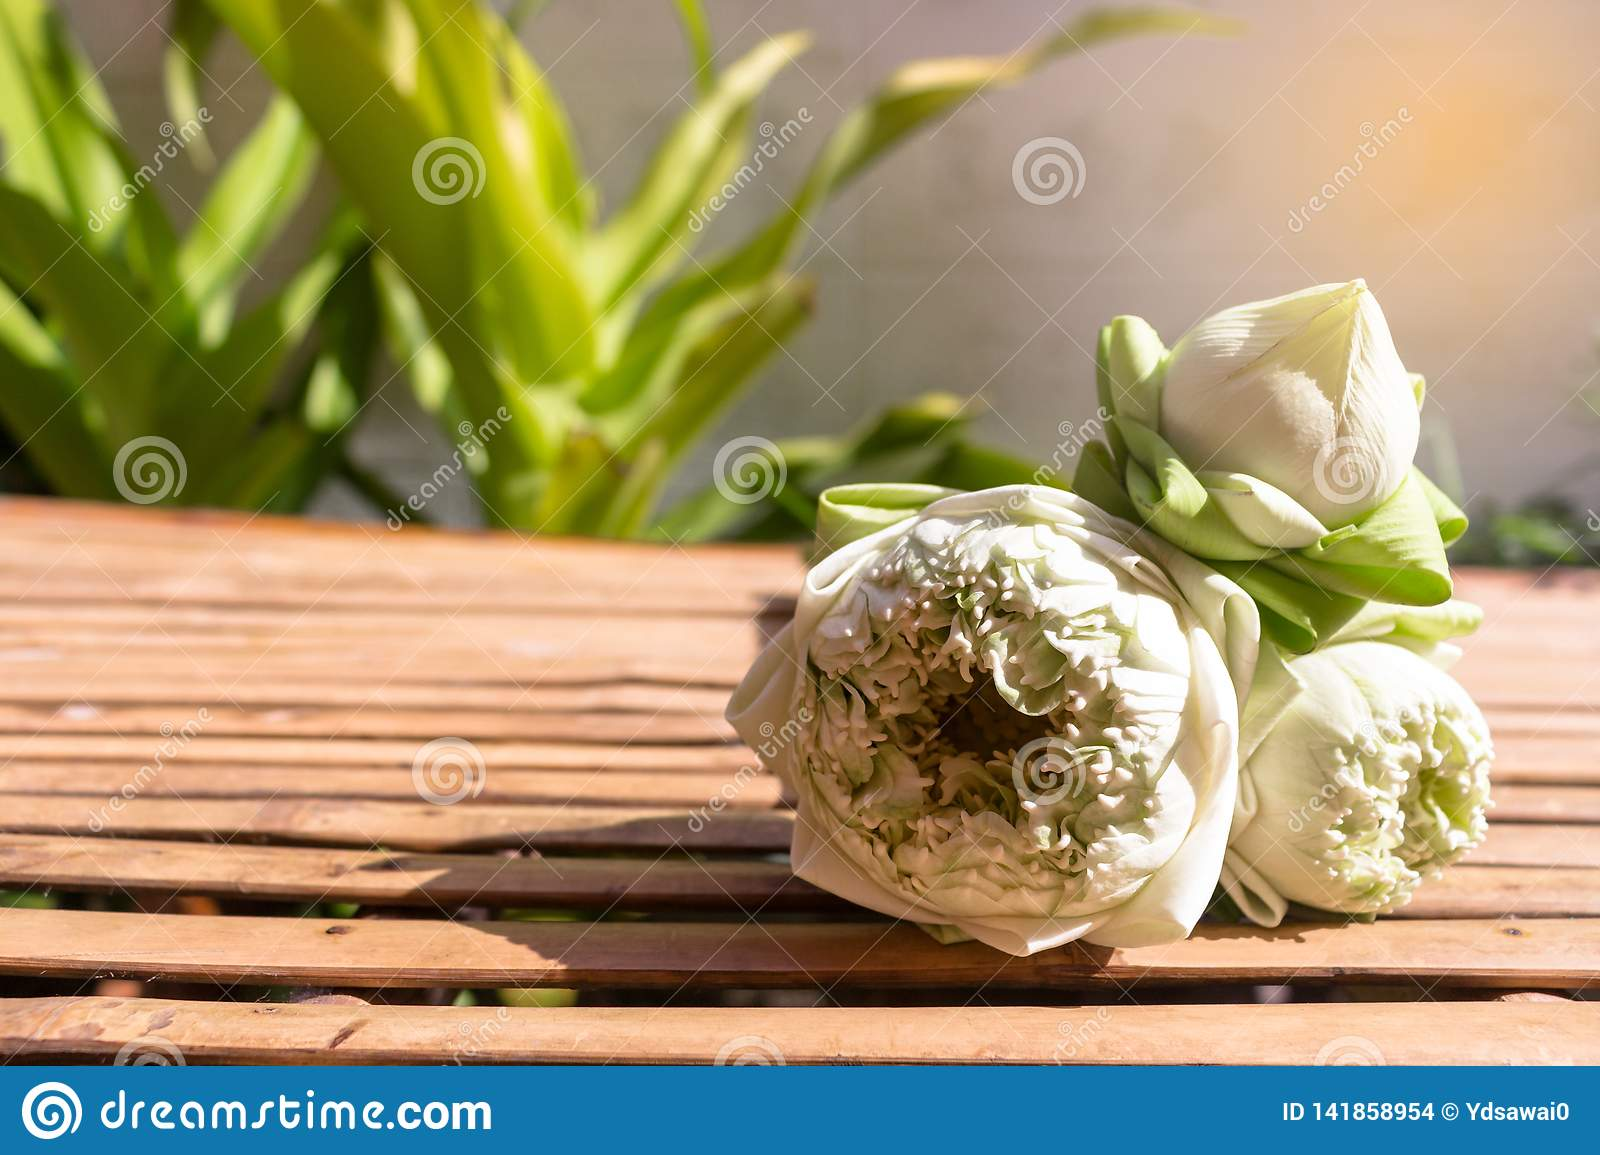 Design for three lotus flowers green buds on bamboo wood table and copy space on plant background